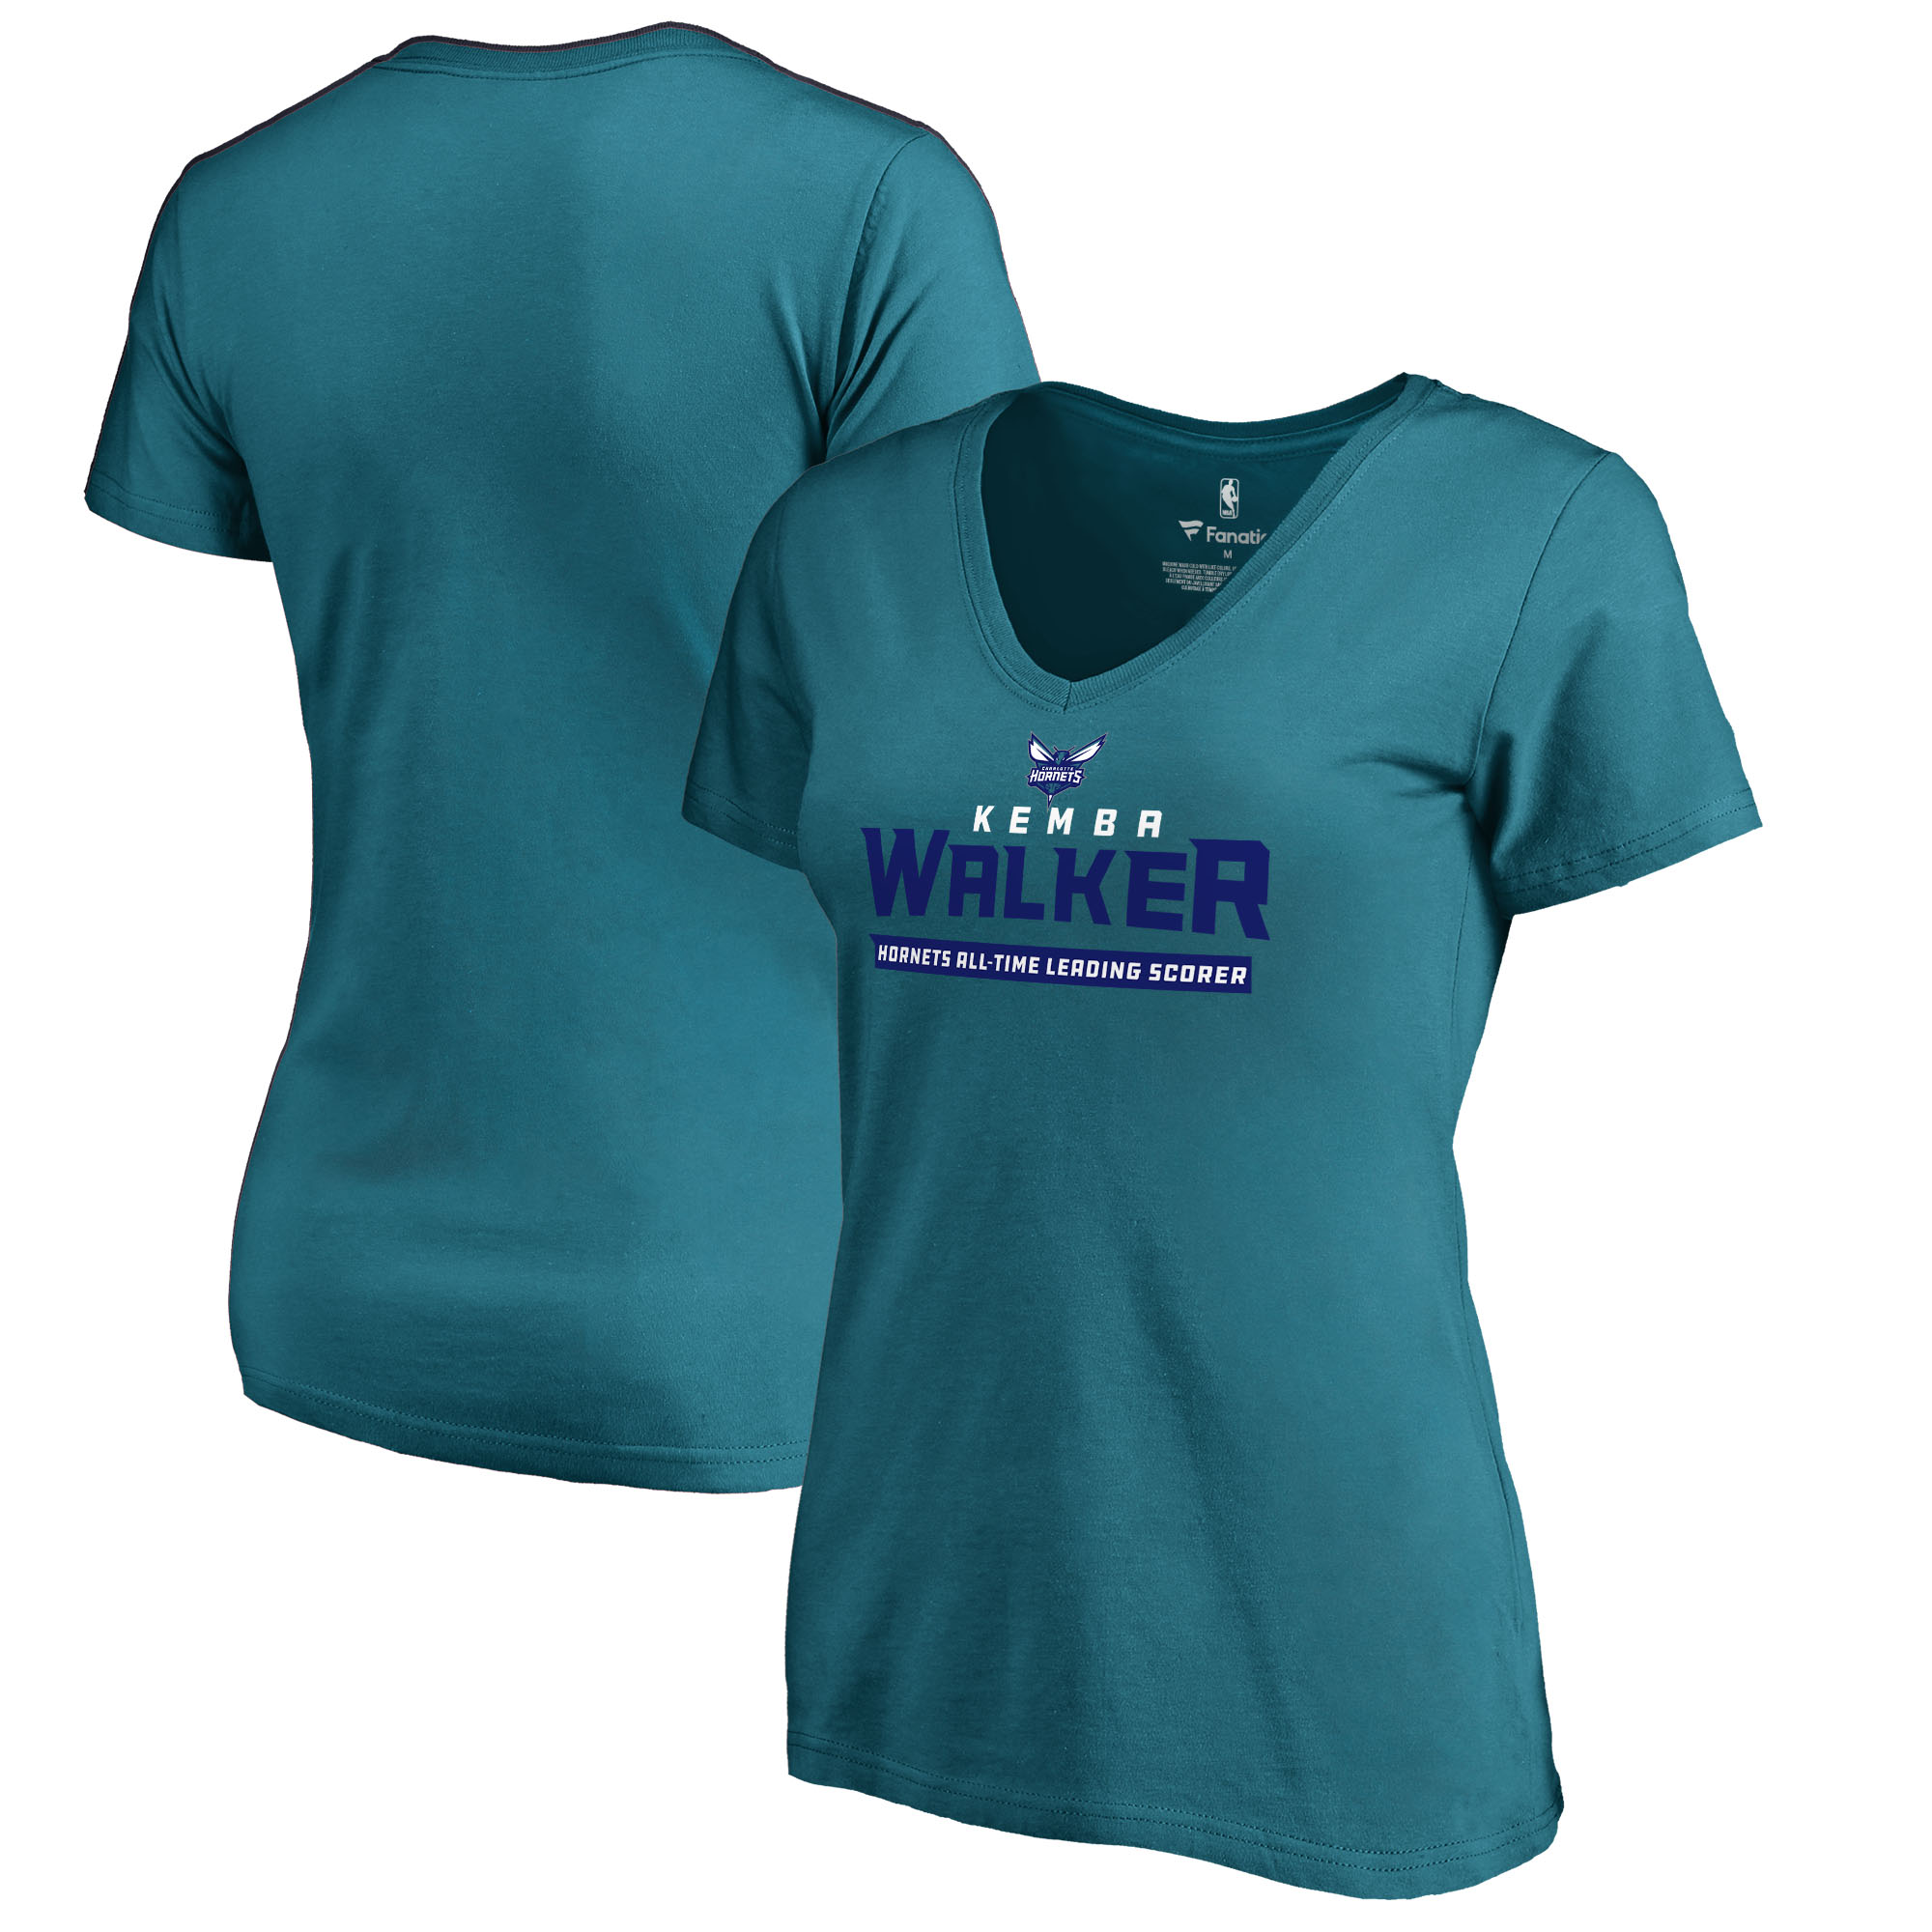 Kemba Walker Charlotte Hornets Fanatics Branded Women's All-Time Leading Scorer V-Neck T-Shirt - Teal